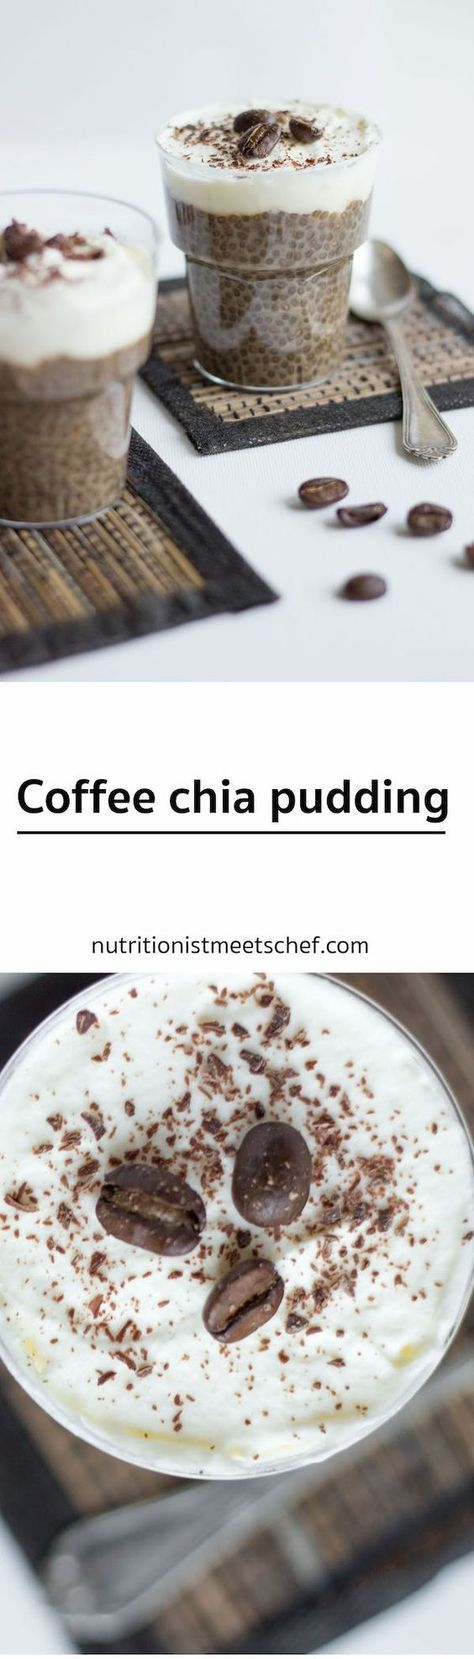 Coffee Chia Pudding! Perfect dessert for all coffee lovers! Change milk to unsweetened almond milk, no sweetener and top with a drizzle of coconut butter....yum.